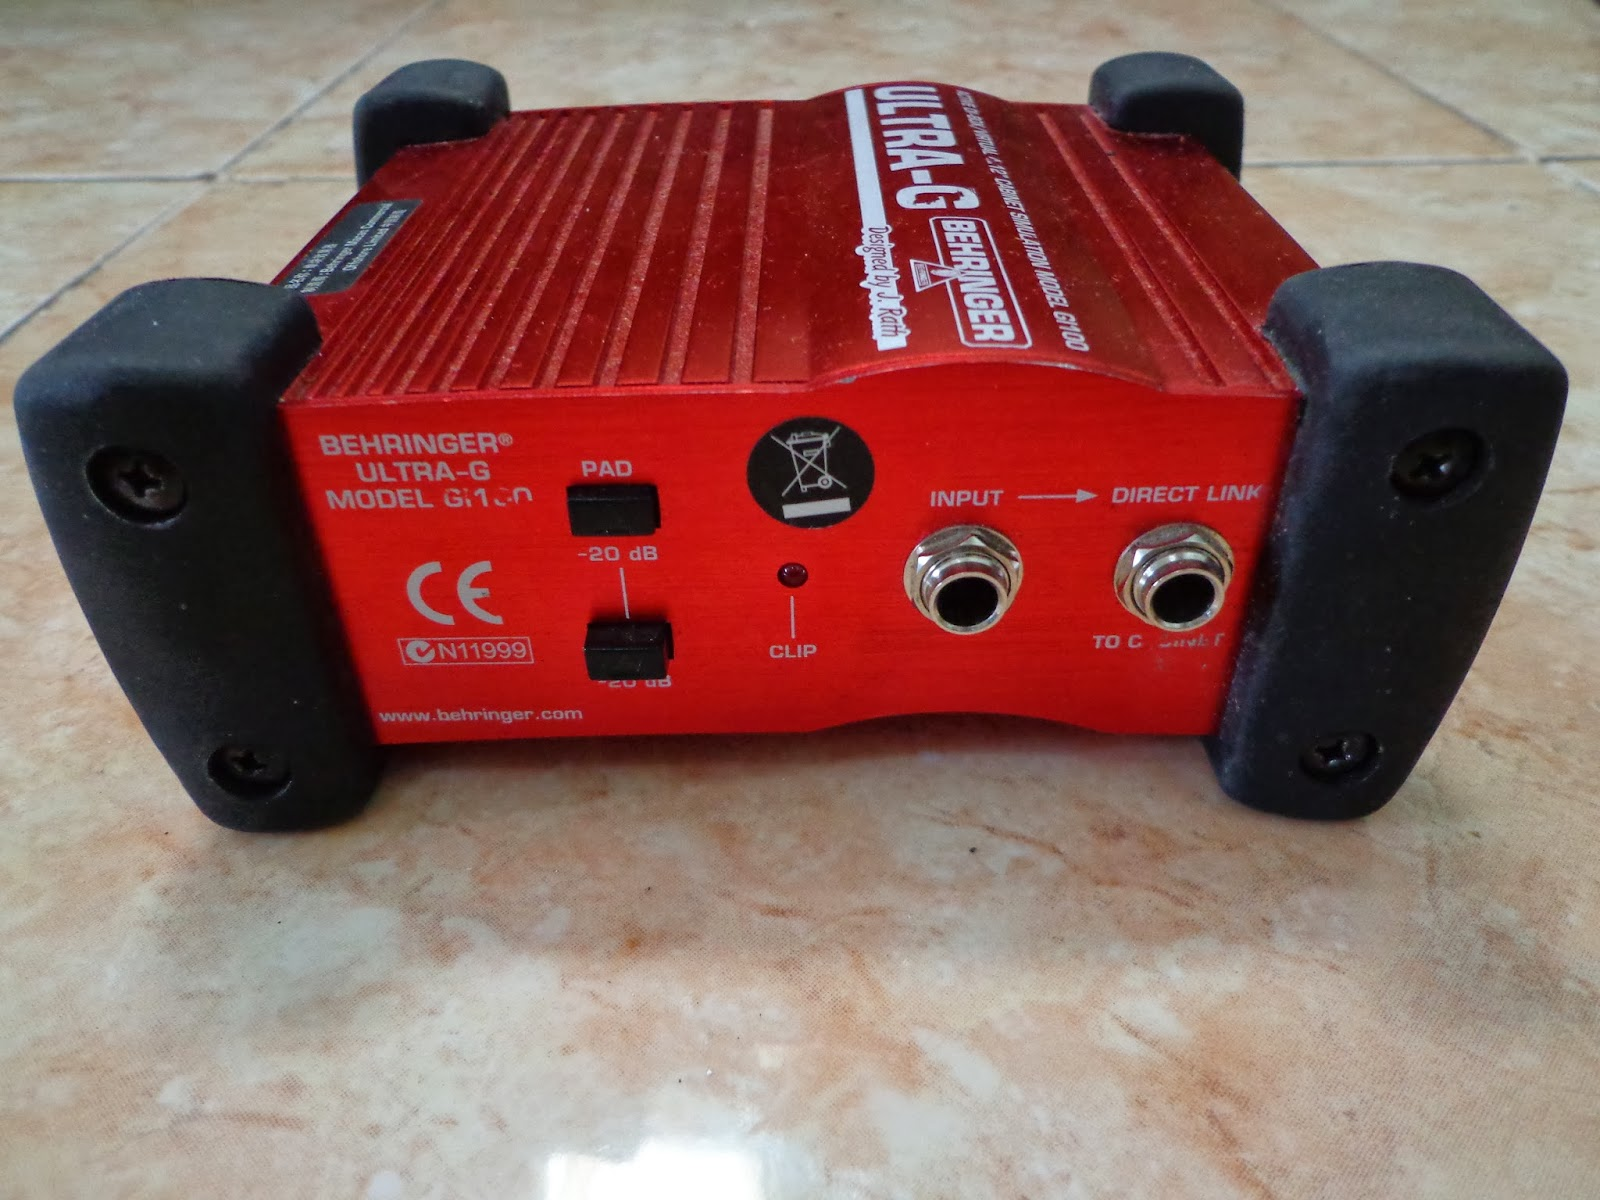 Behringer ULTRA-G GI100 active DI box